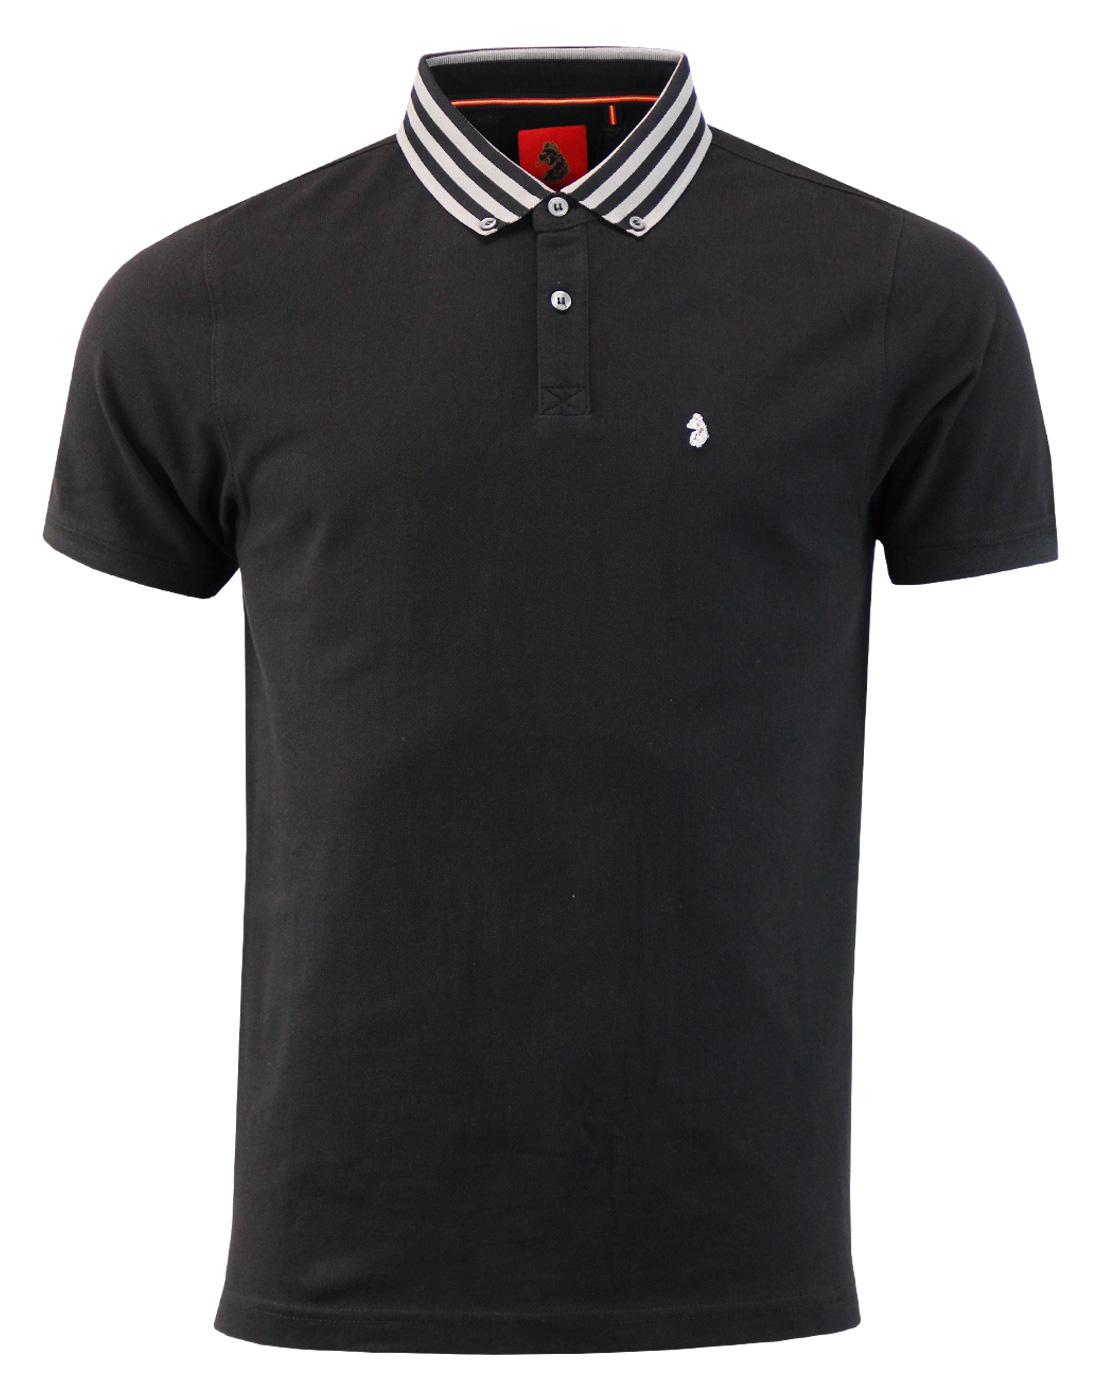 Turtles Heads LUKE 1977 Mod Stripe Collar Polo (B)